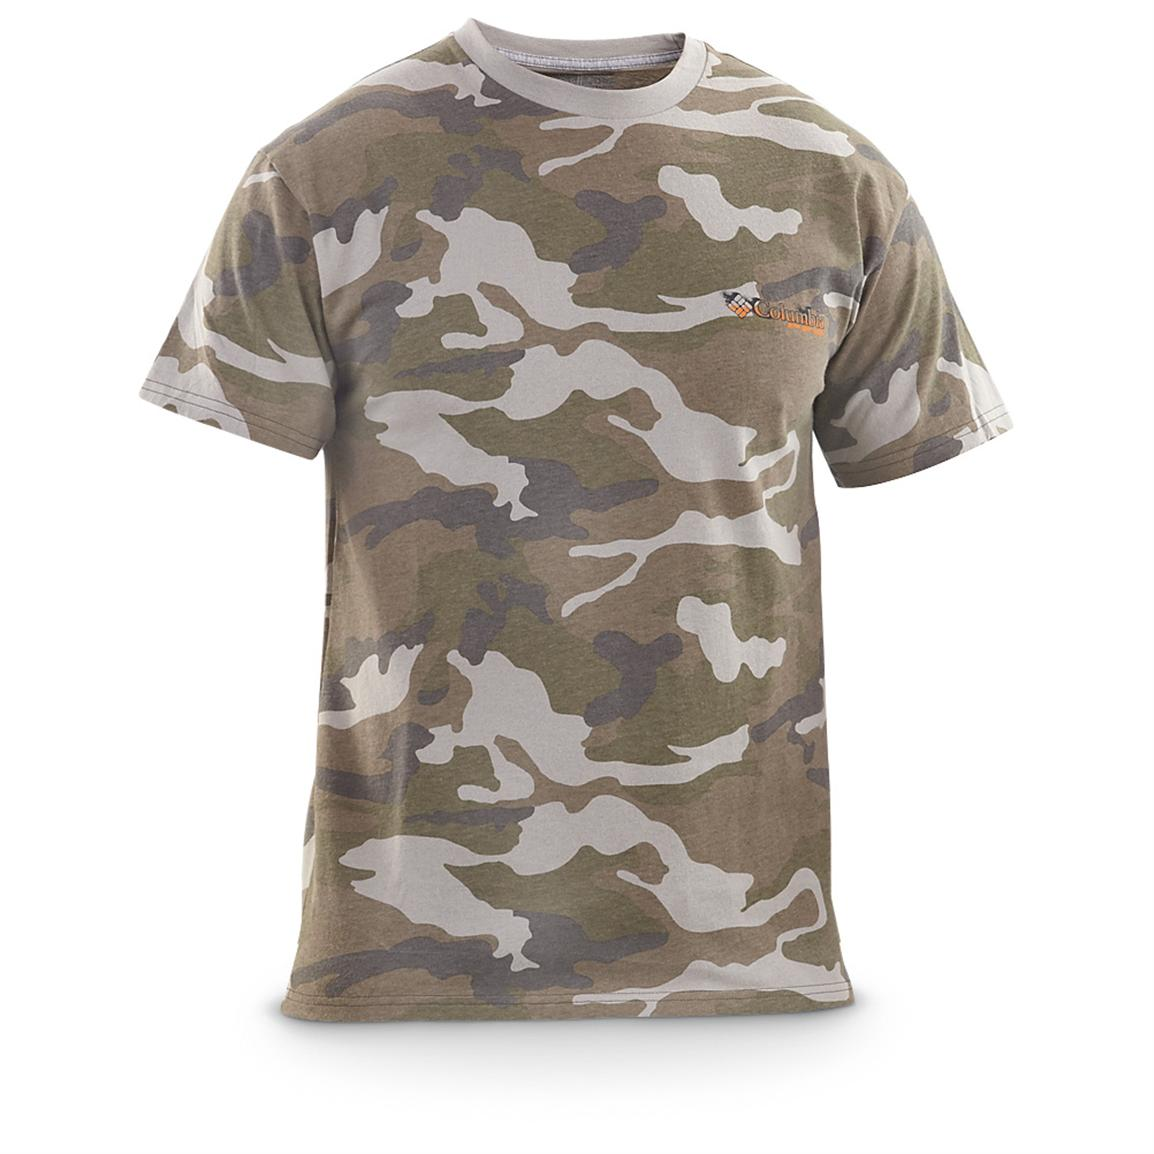 Men's Columbia PFG Only the Strong Survive Short-sleeved T-shirt, Flint Gray Camo - Front view